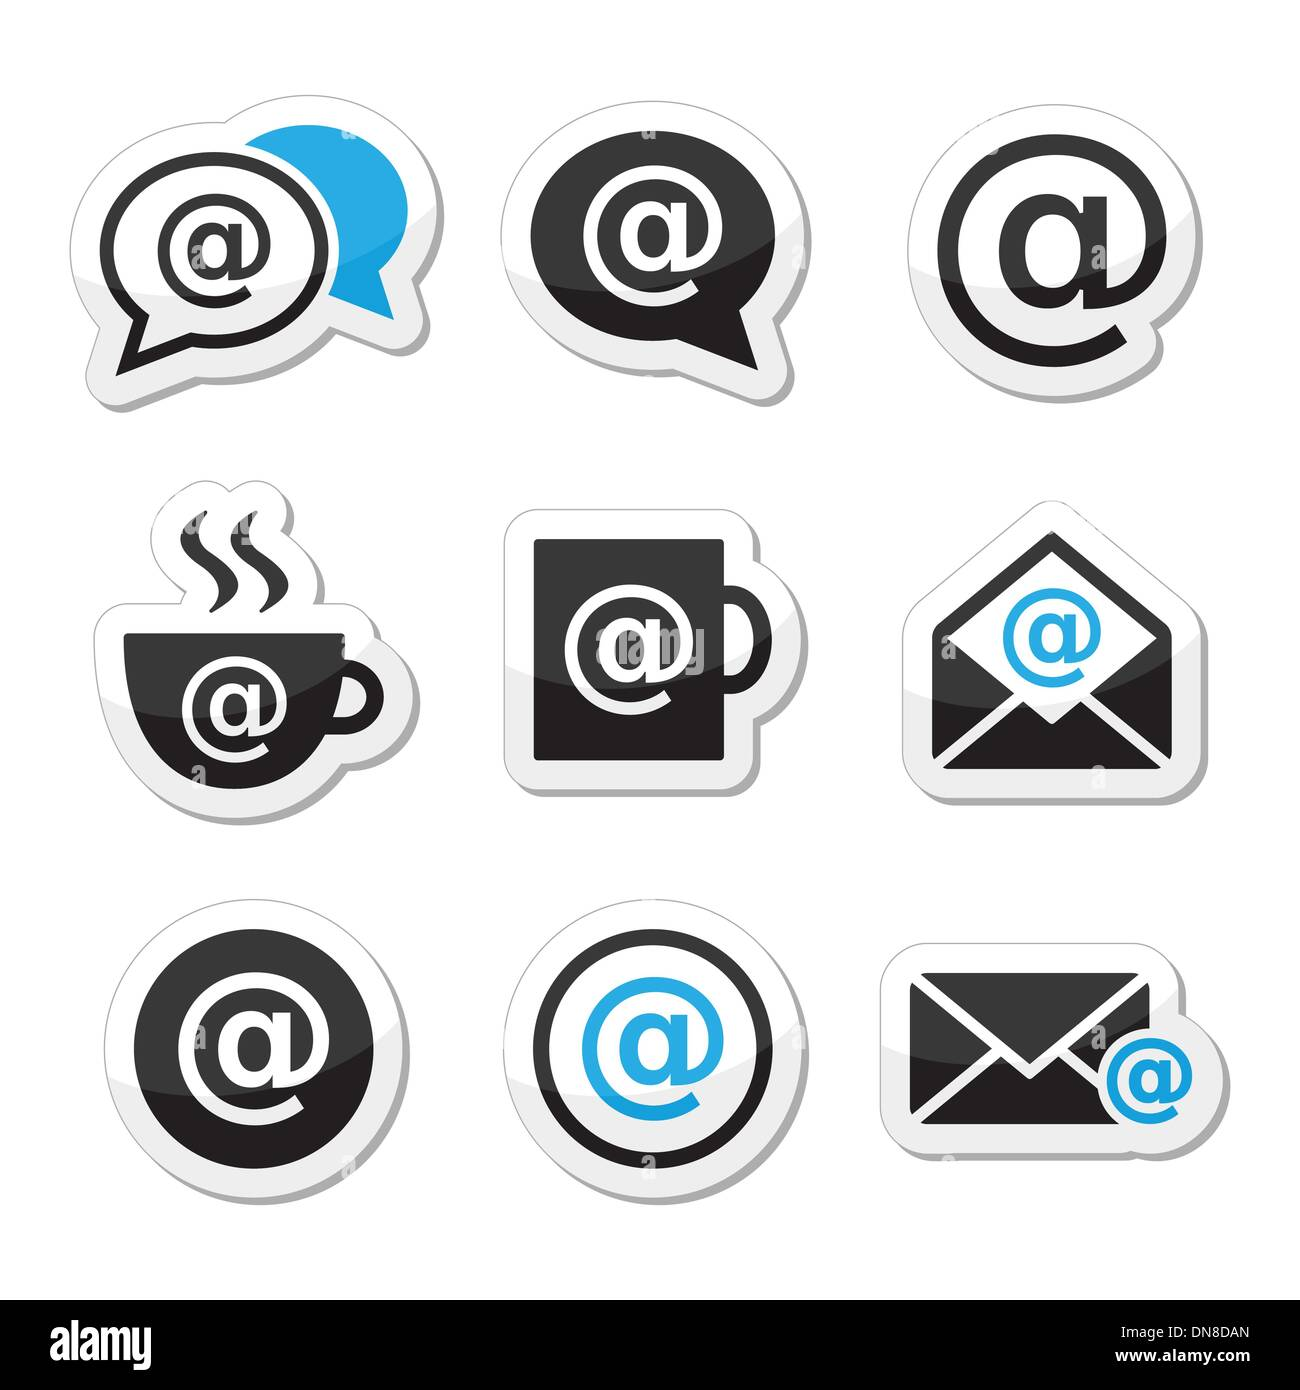 Email, internet cafe, wifi vector icons set - Stock Image